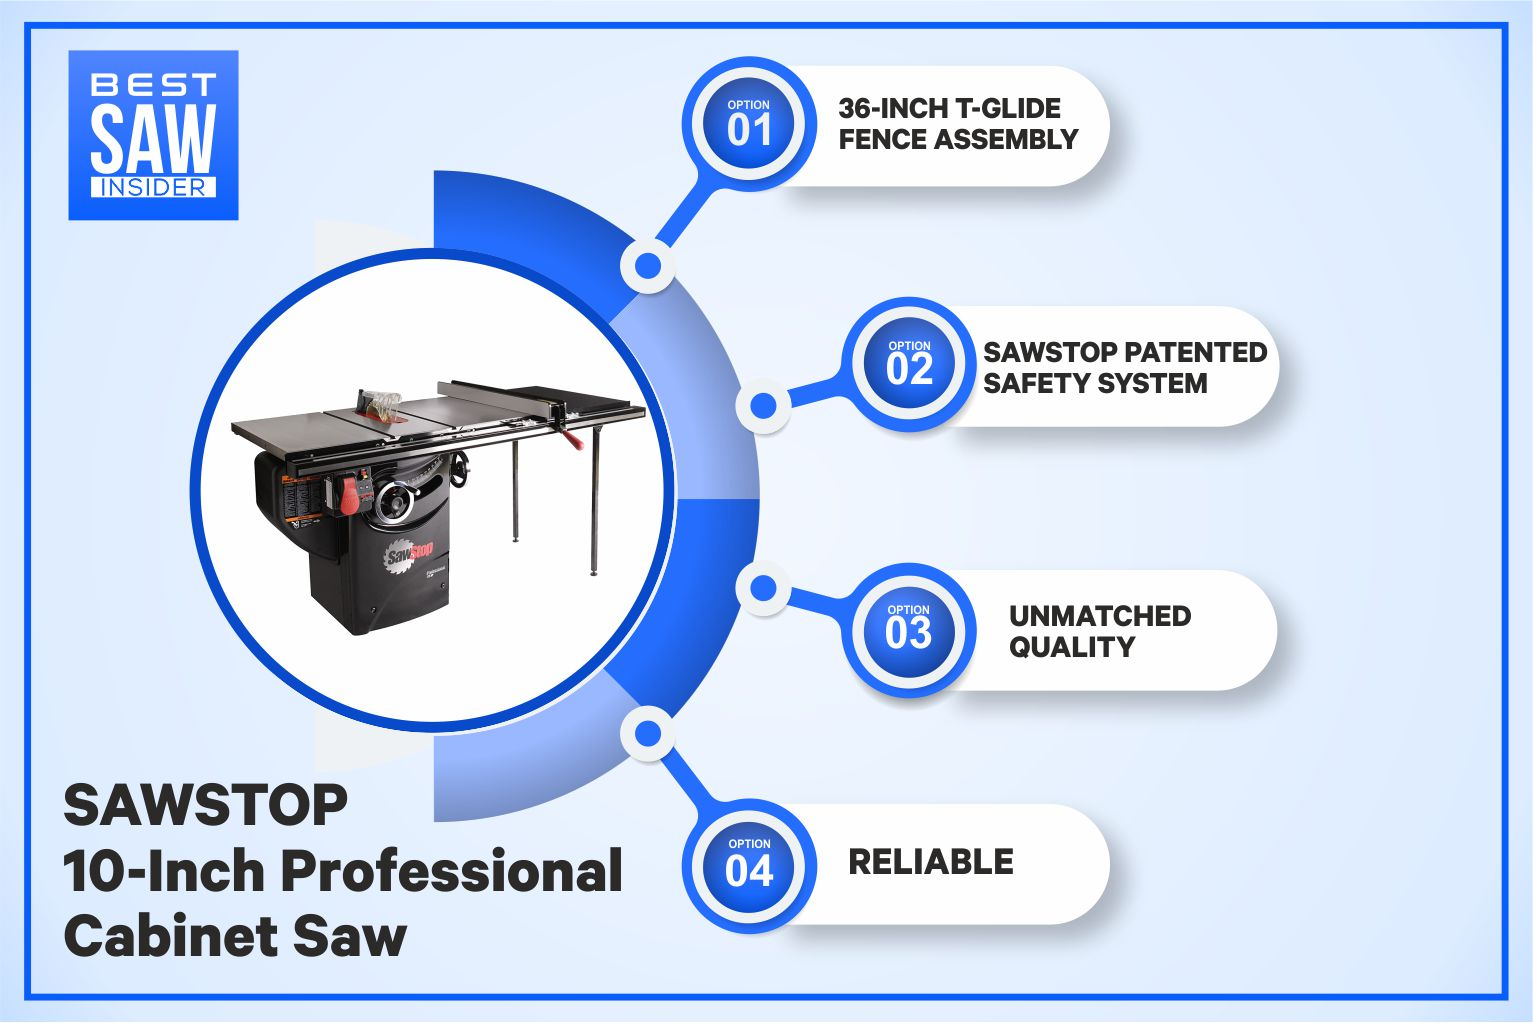 SawStop PCS175 Table Saw—Professional Cabinet Table Saw detailed infograph